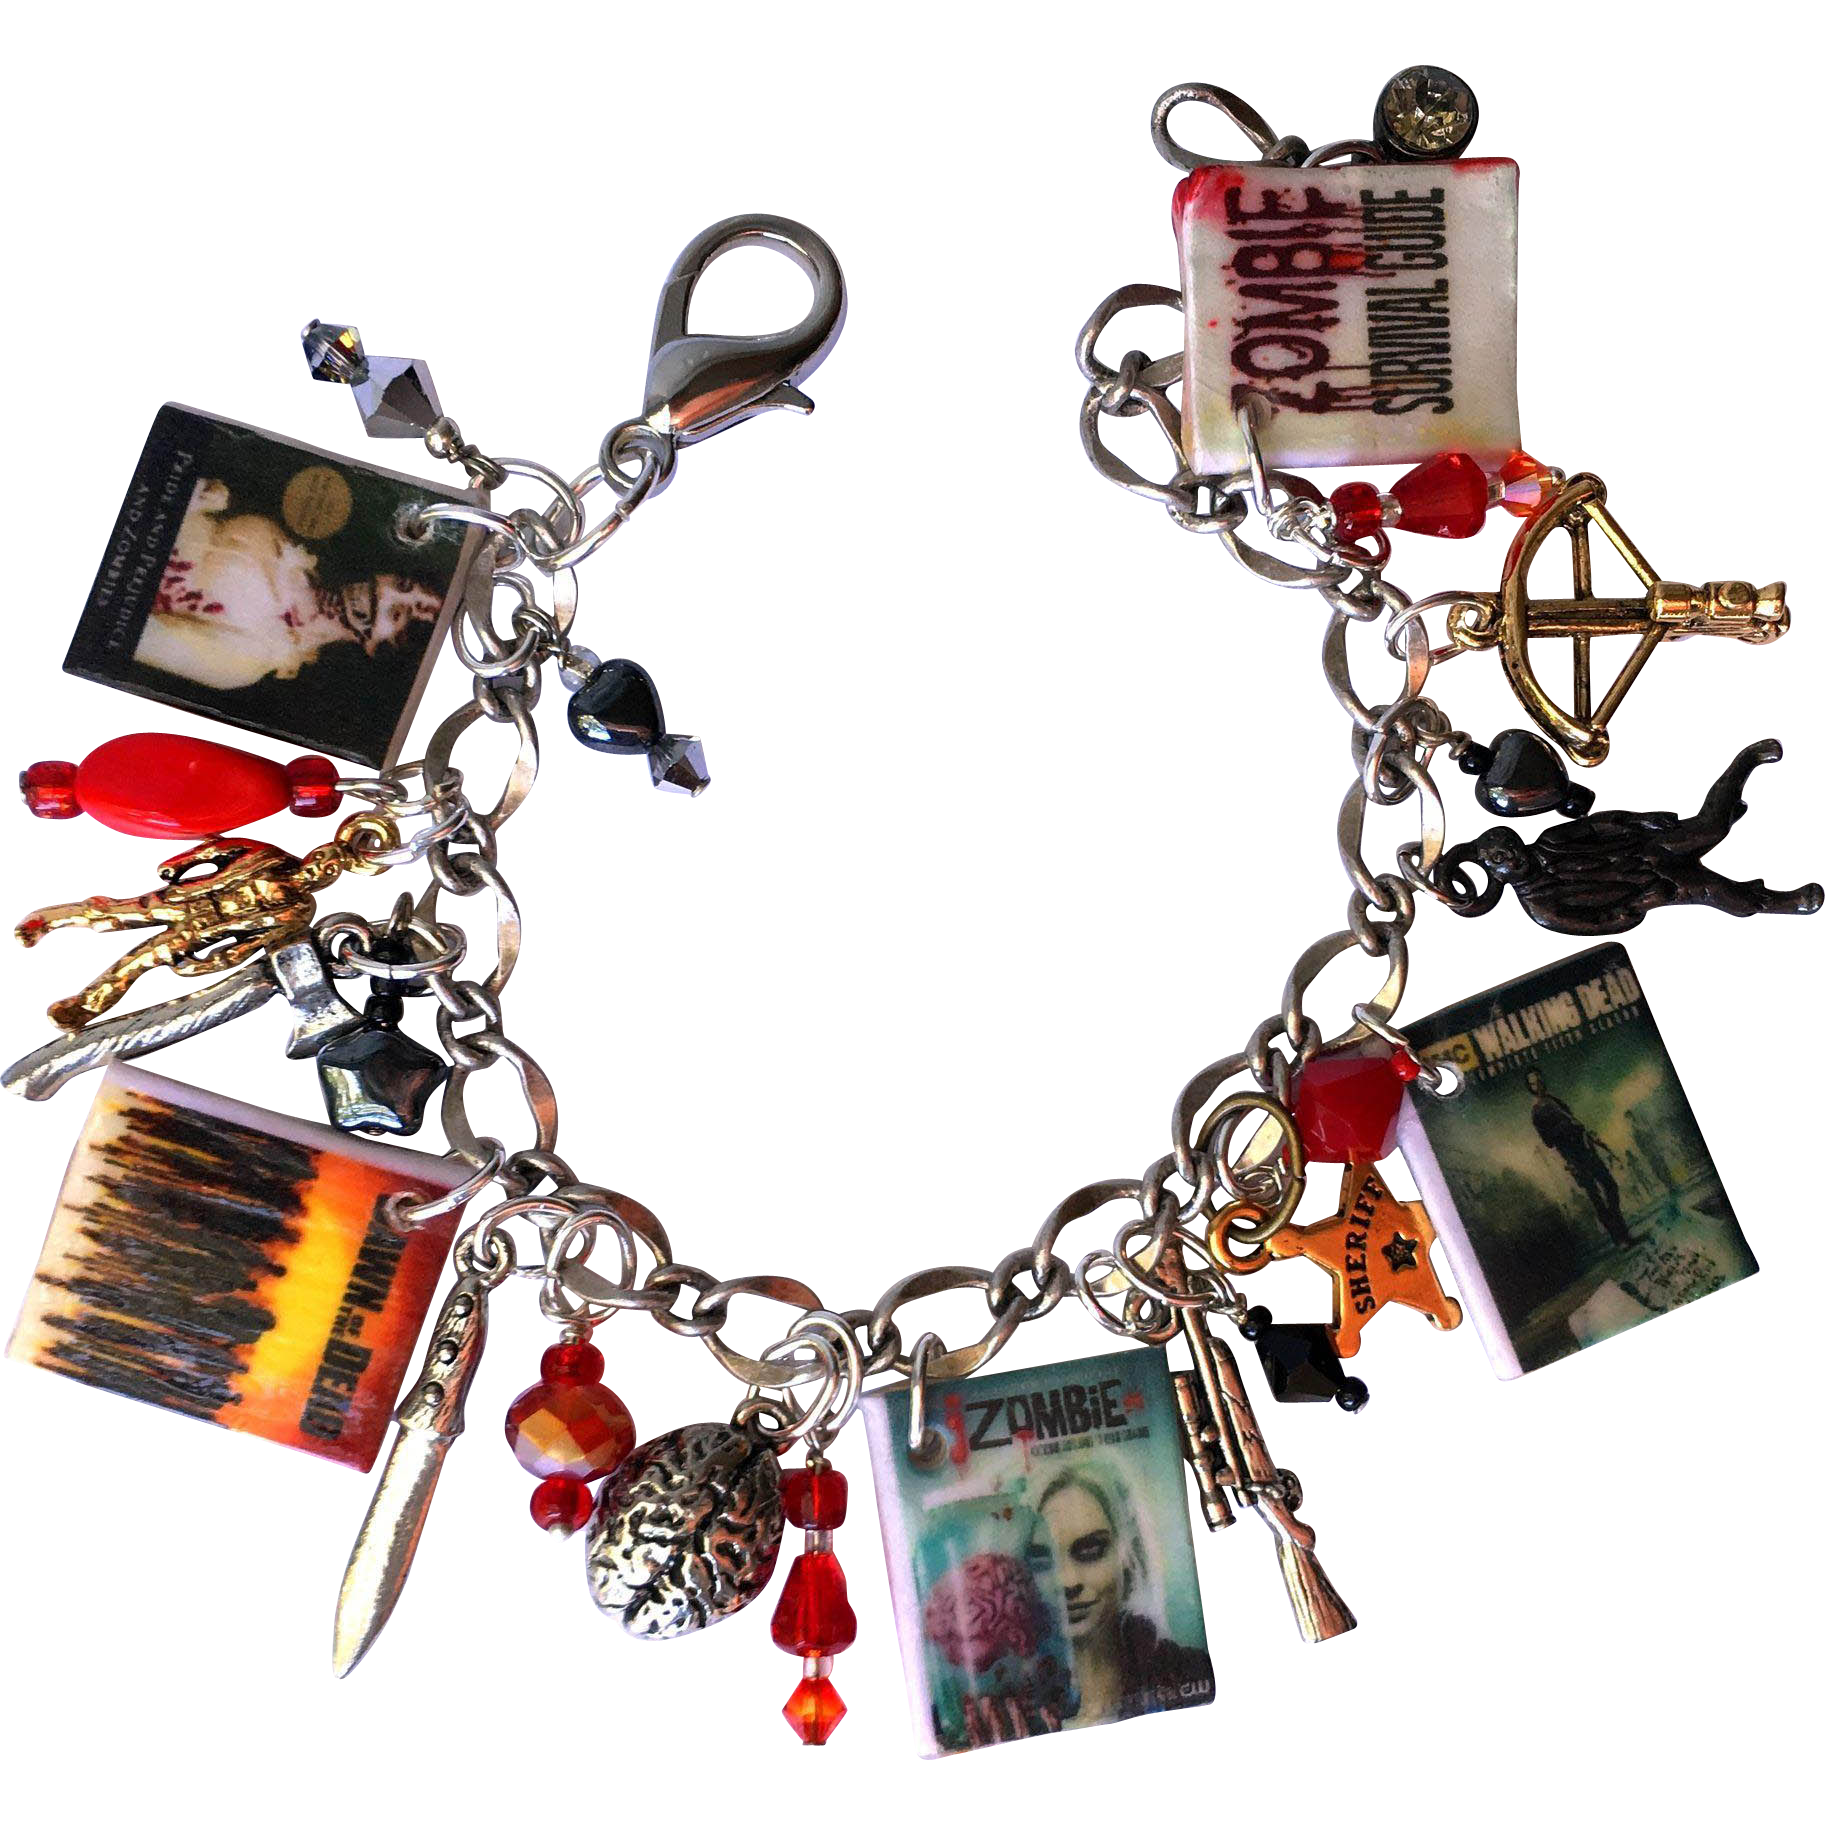 Zombies Charm Bracelet with Tiny Zombie Survival Guide - Show Posters – Zombie Charms